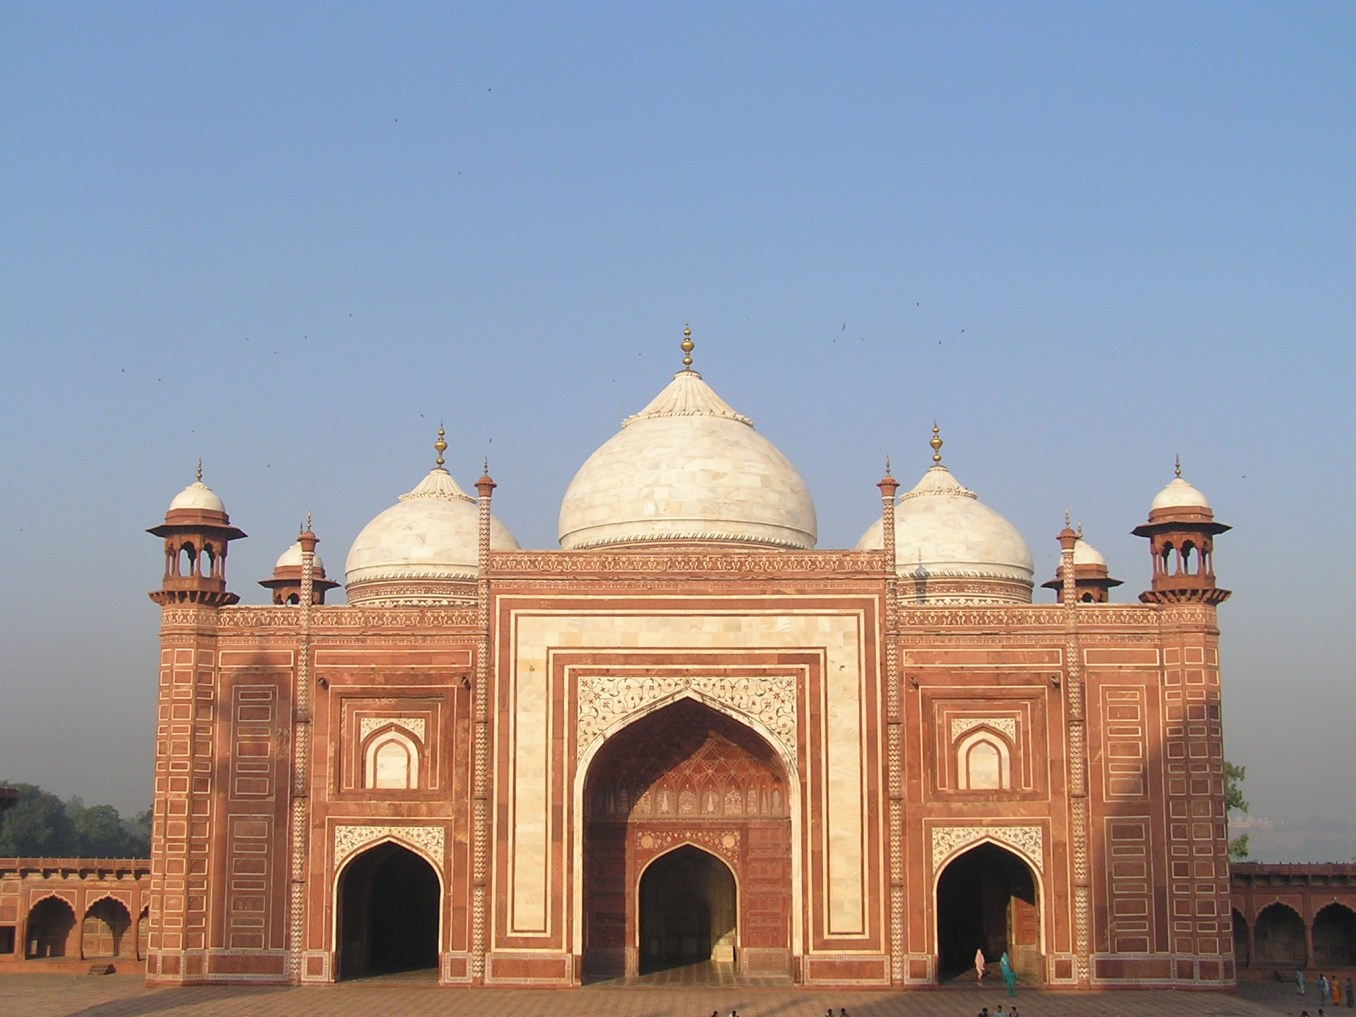 A mosque in the Taj complex